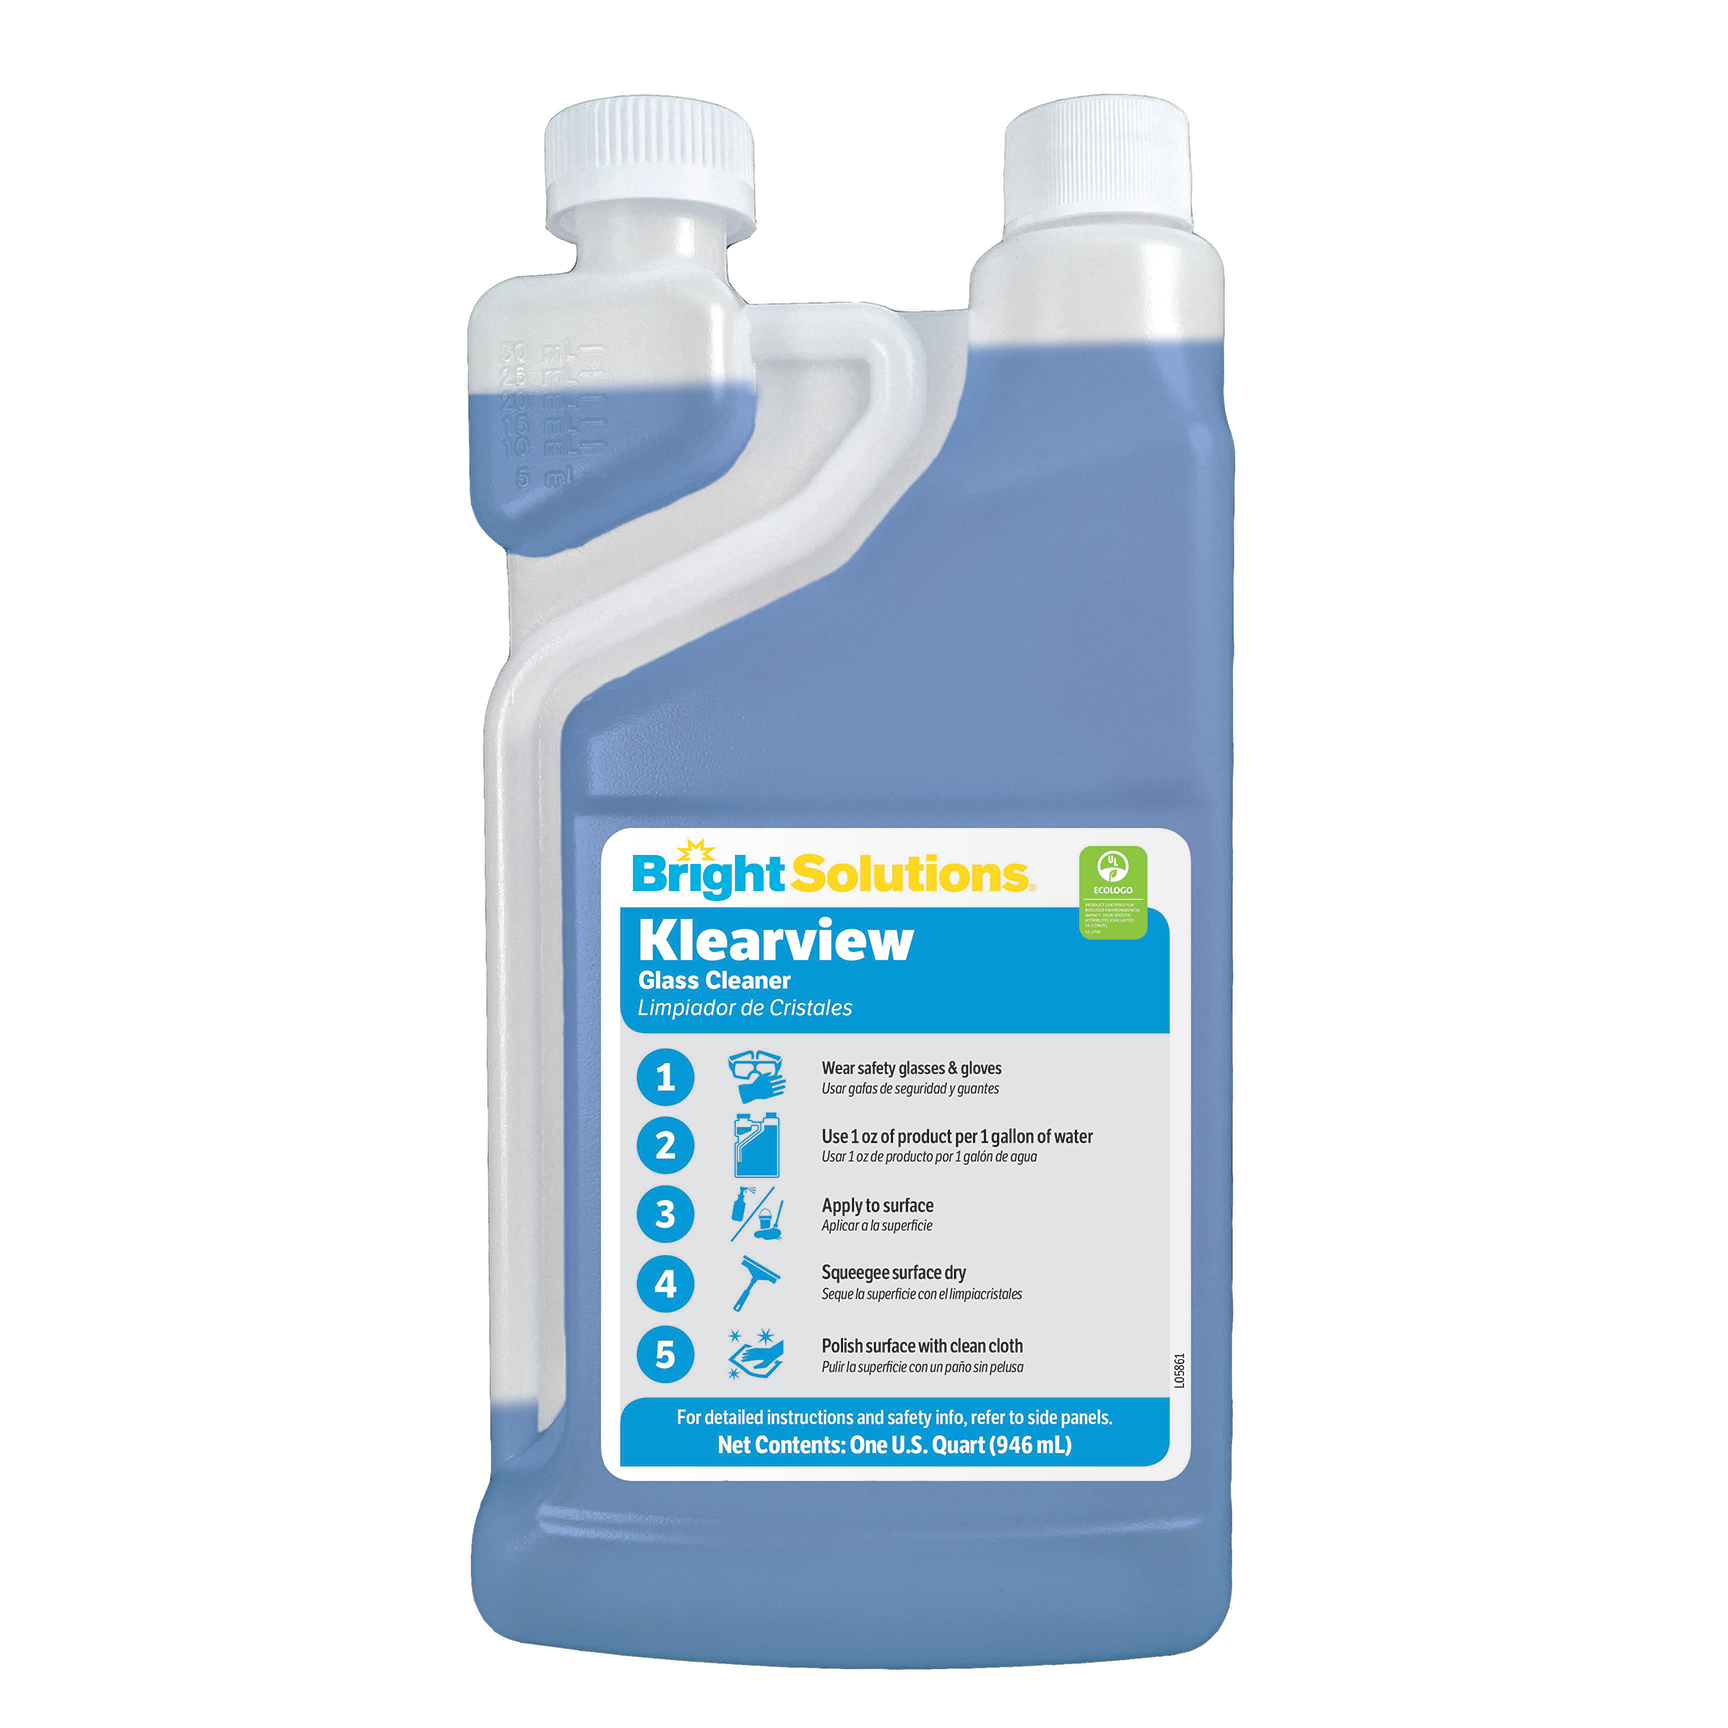 Bright Solutions® Klearview Glass Cleaner #1 - 6/1Q